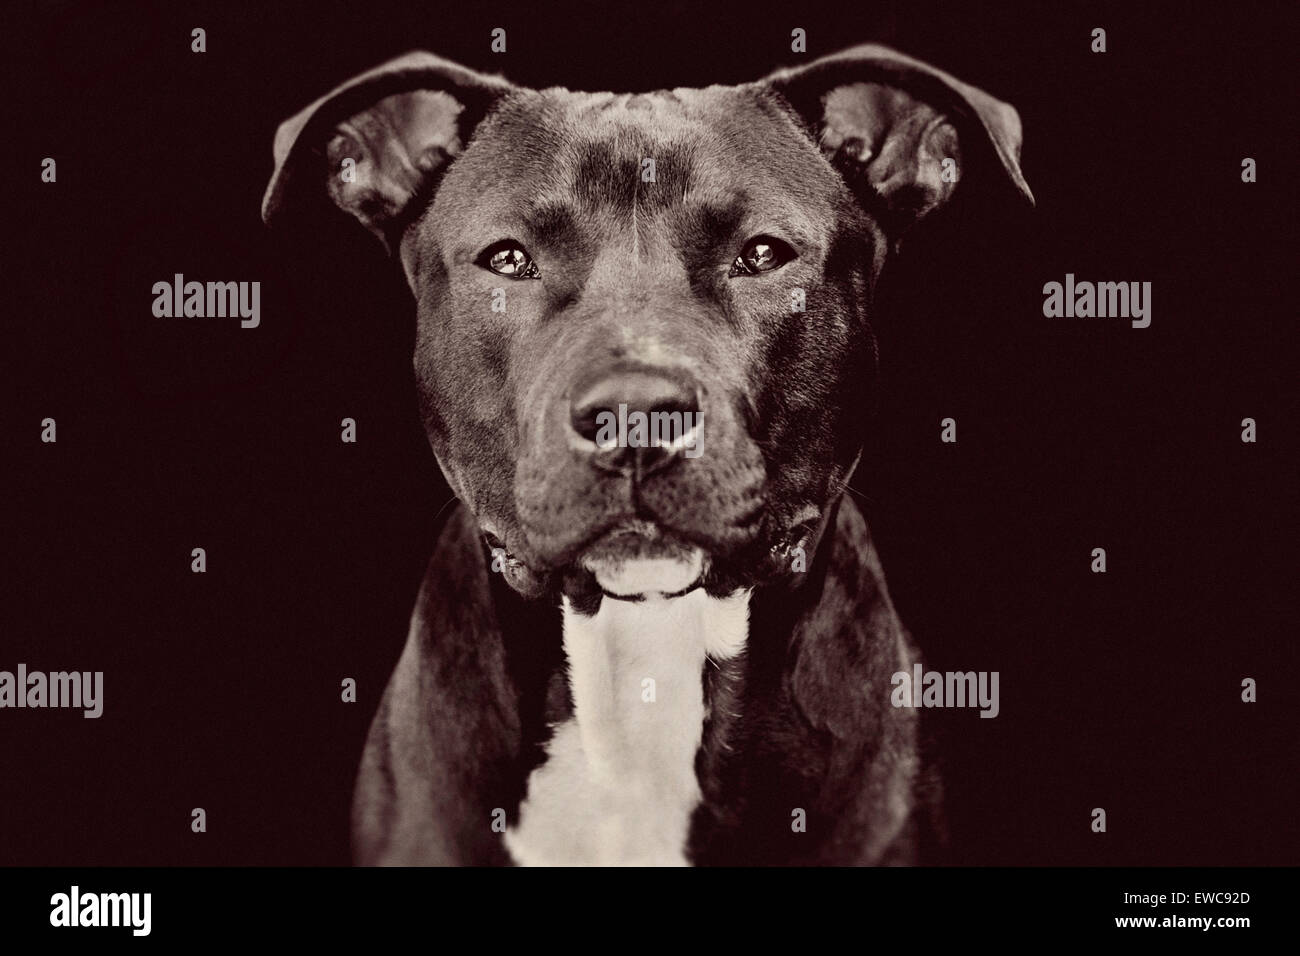 Studio portrait of a medium large adult black Pitbull dog on black background facing camera with riveting eye contact - Stock Image